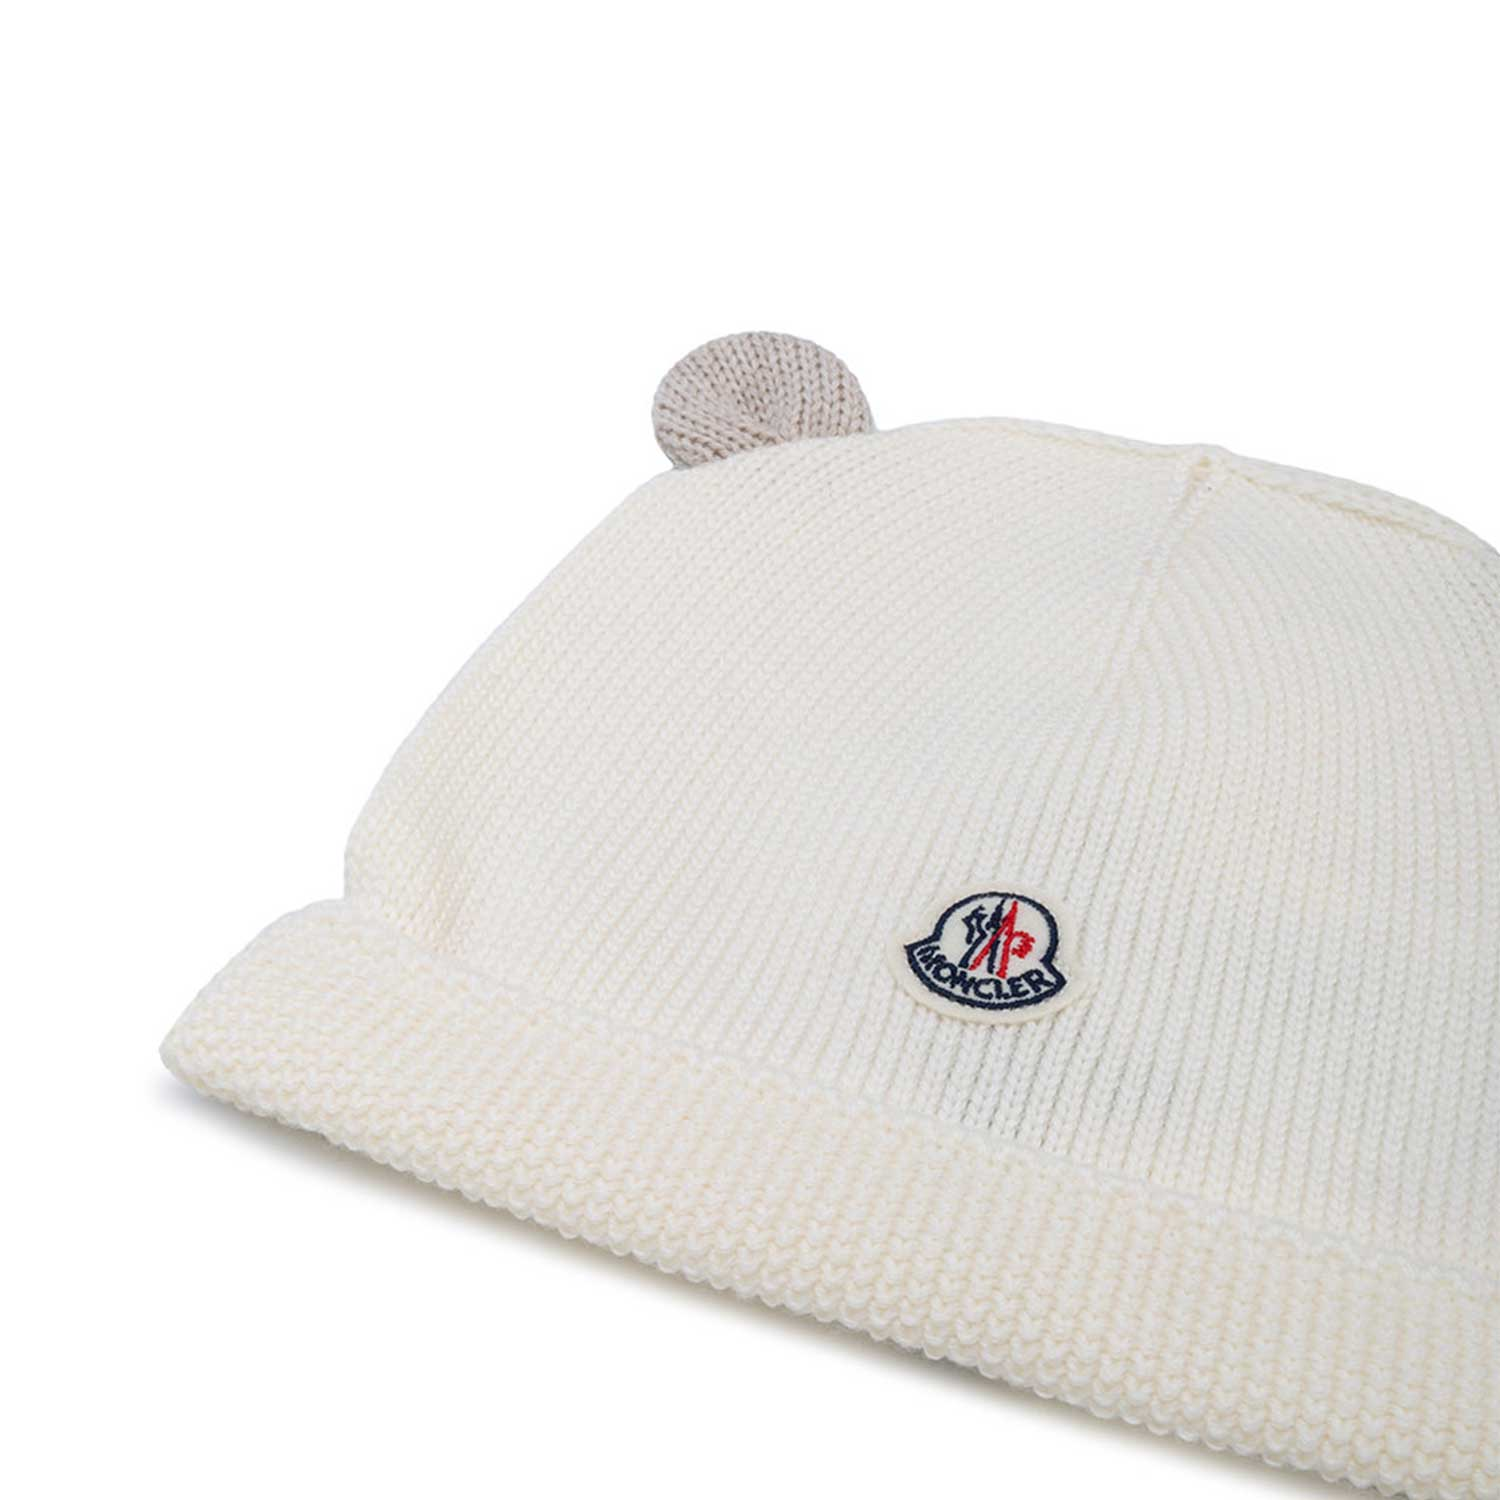 Moncler - White Bear Hat For Boys - annameglio.com shop online f0c81d3a33d